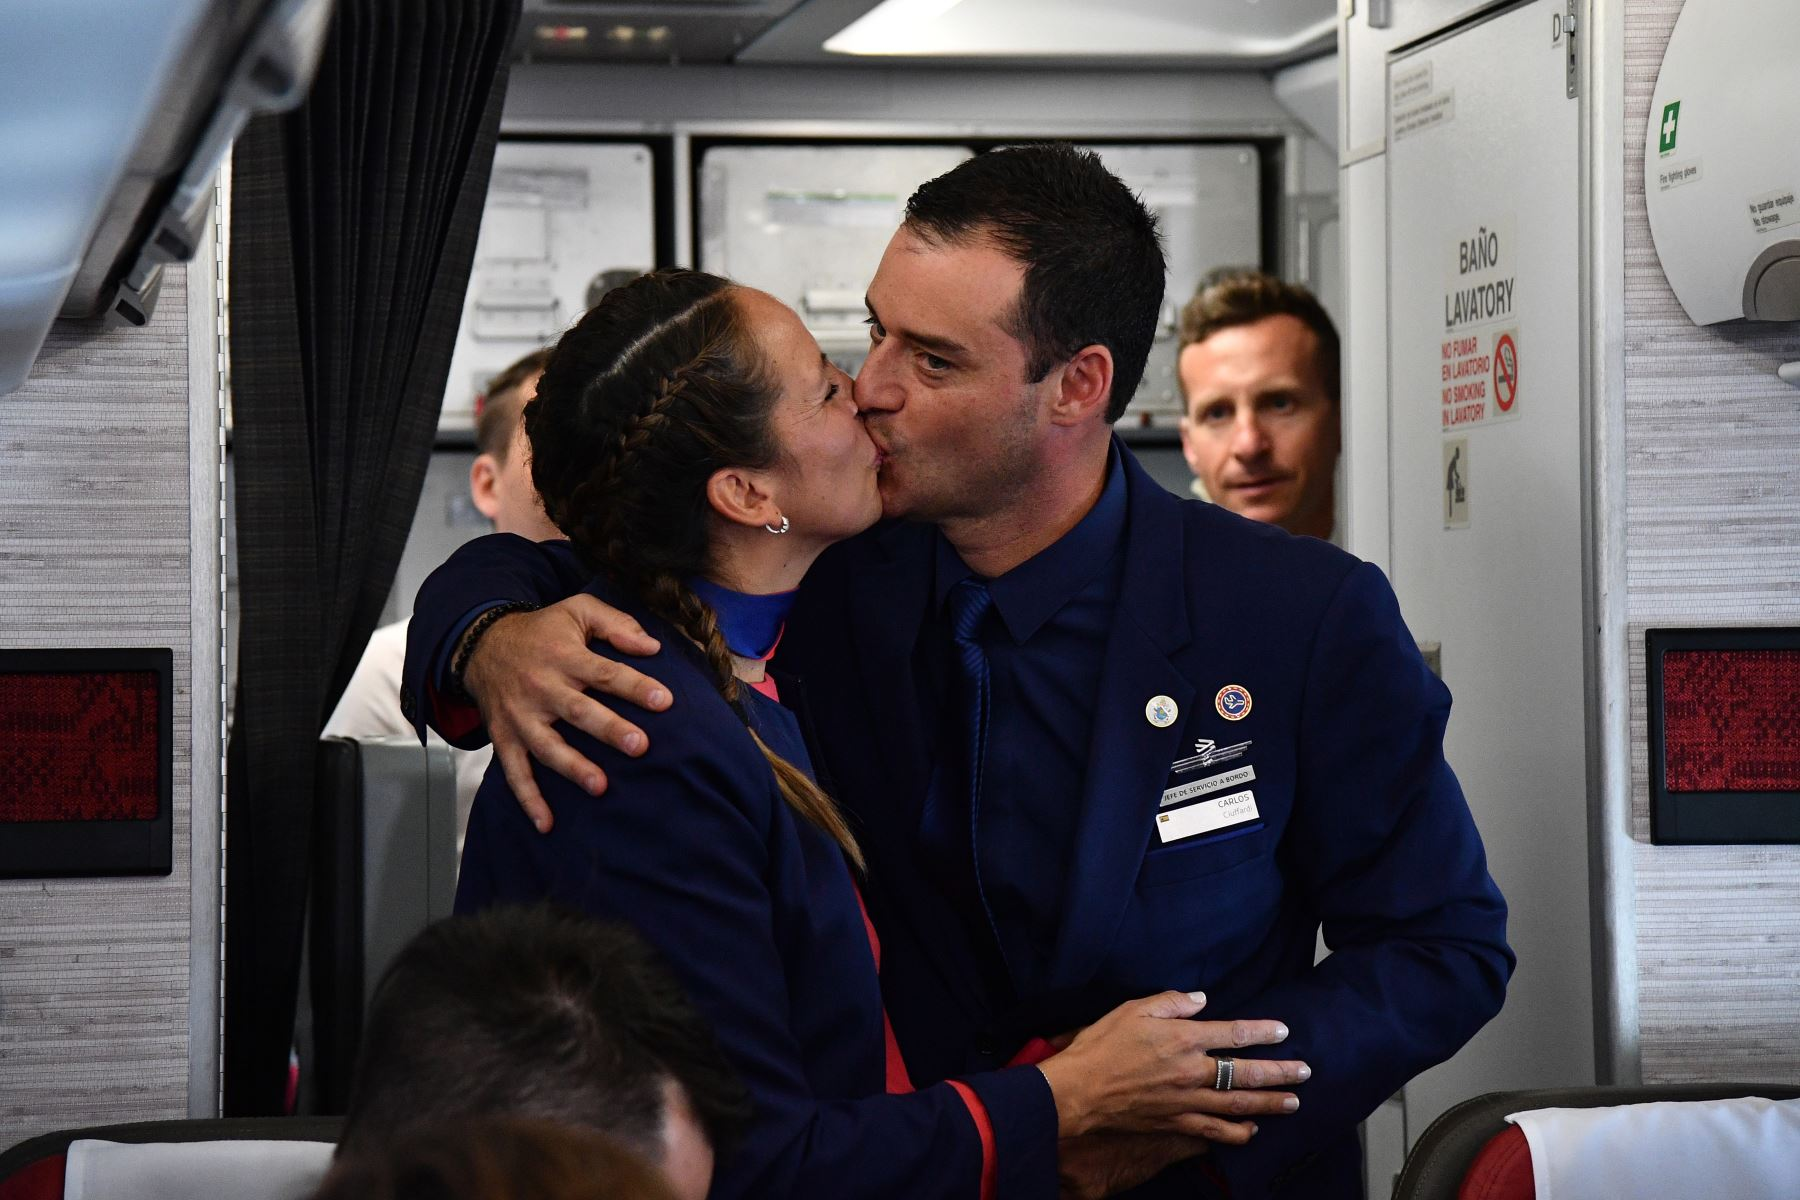 Pope Francis just performed a 'historic' wedding aboard the papal plane